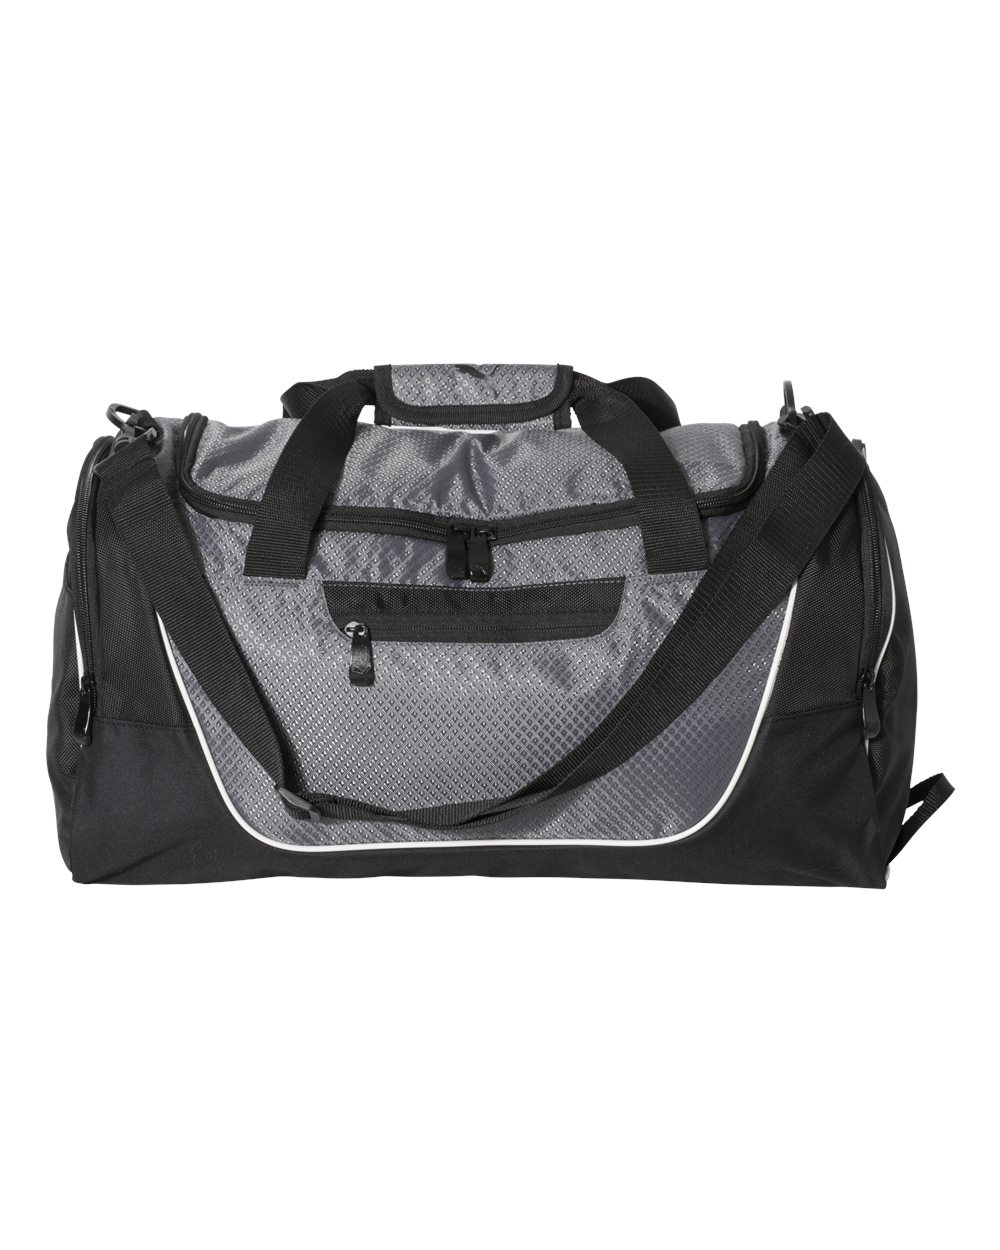 34L Duffel Bag-Puma